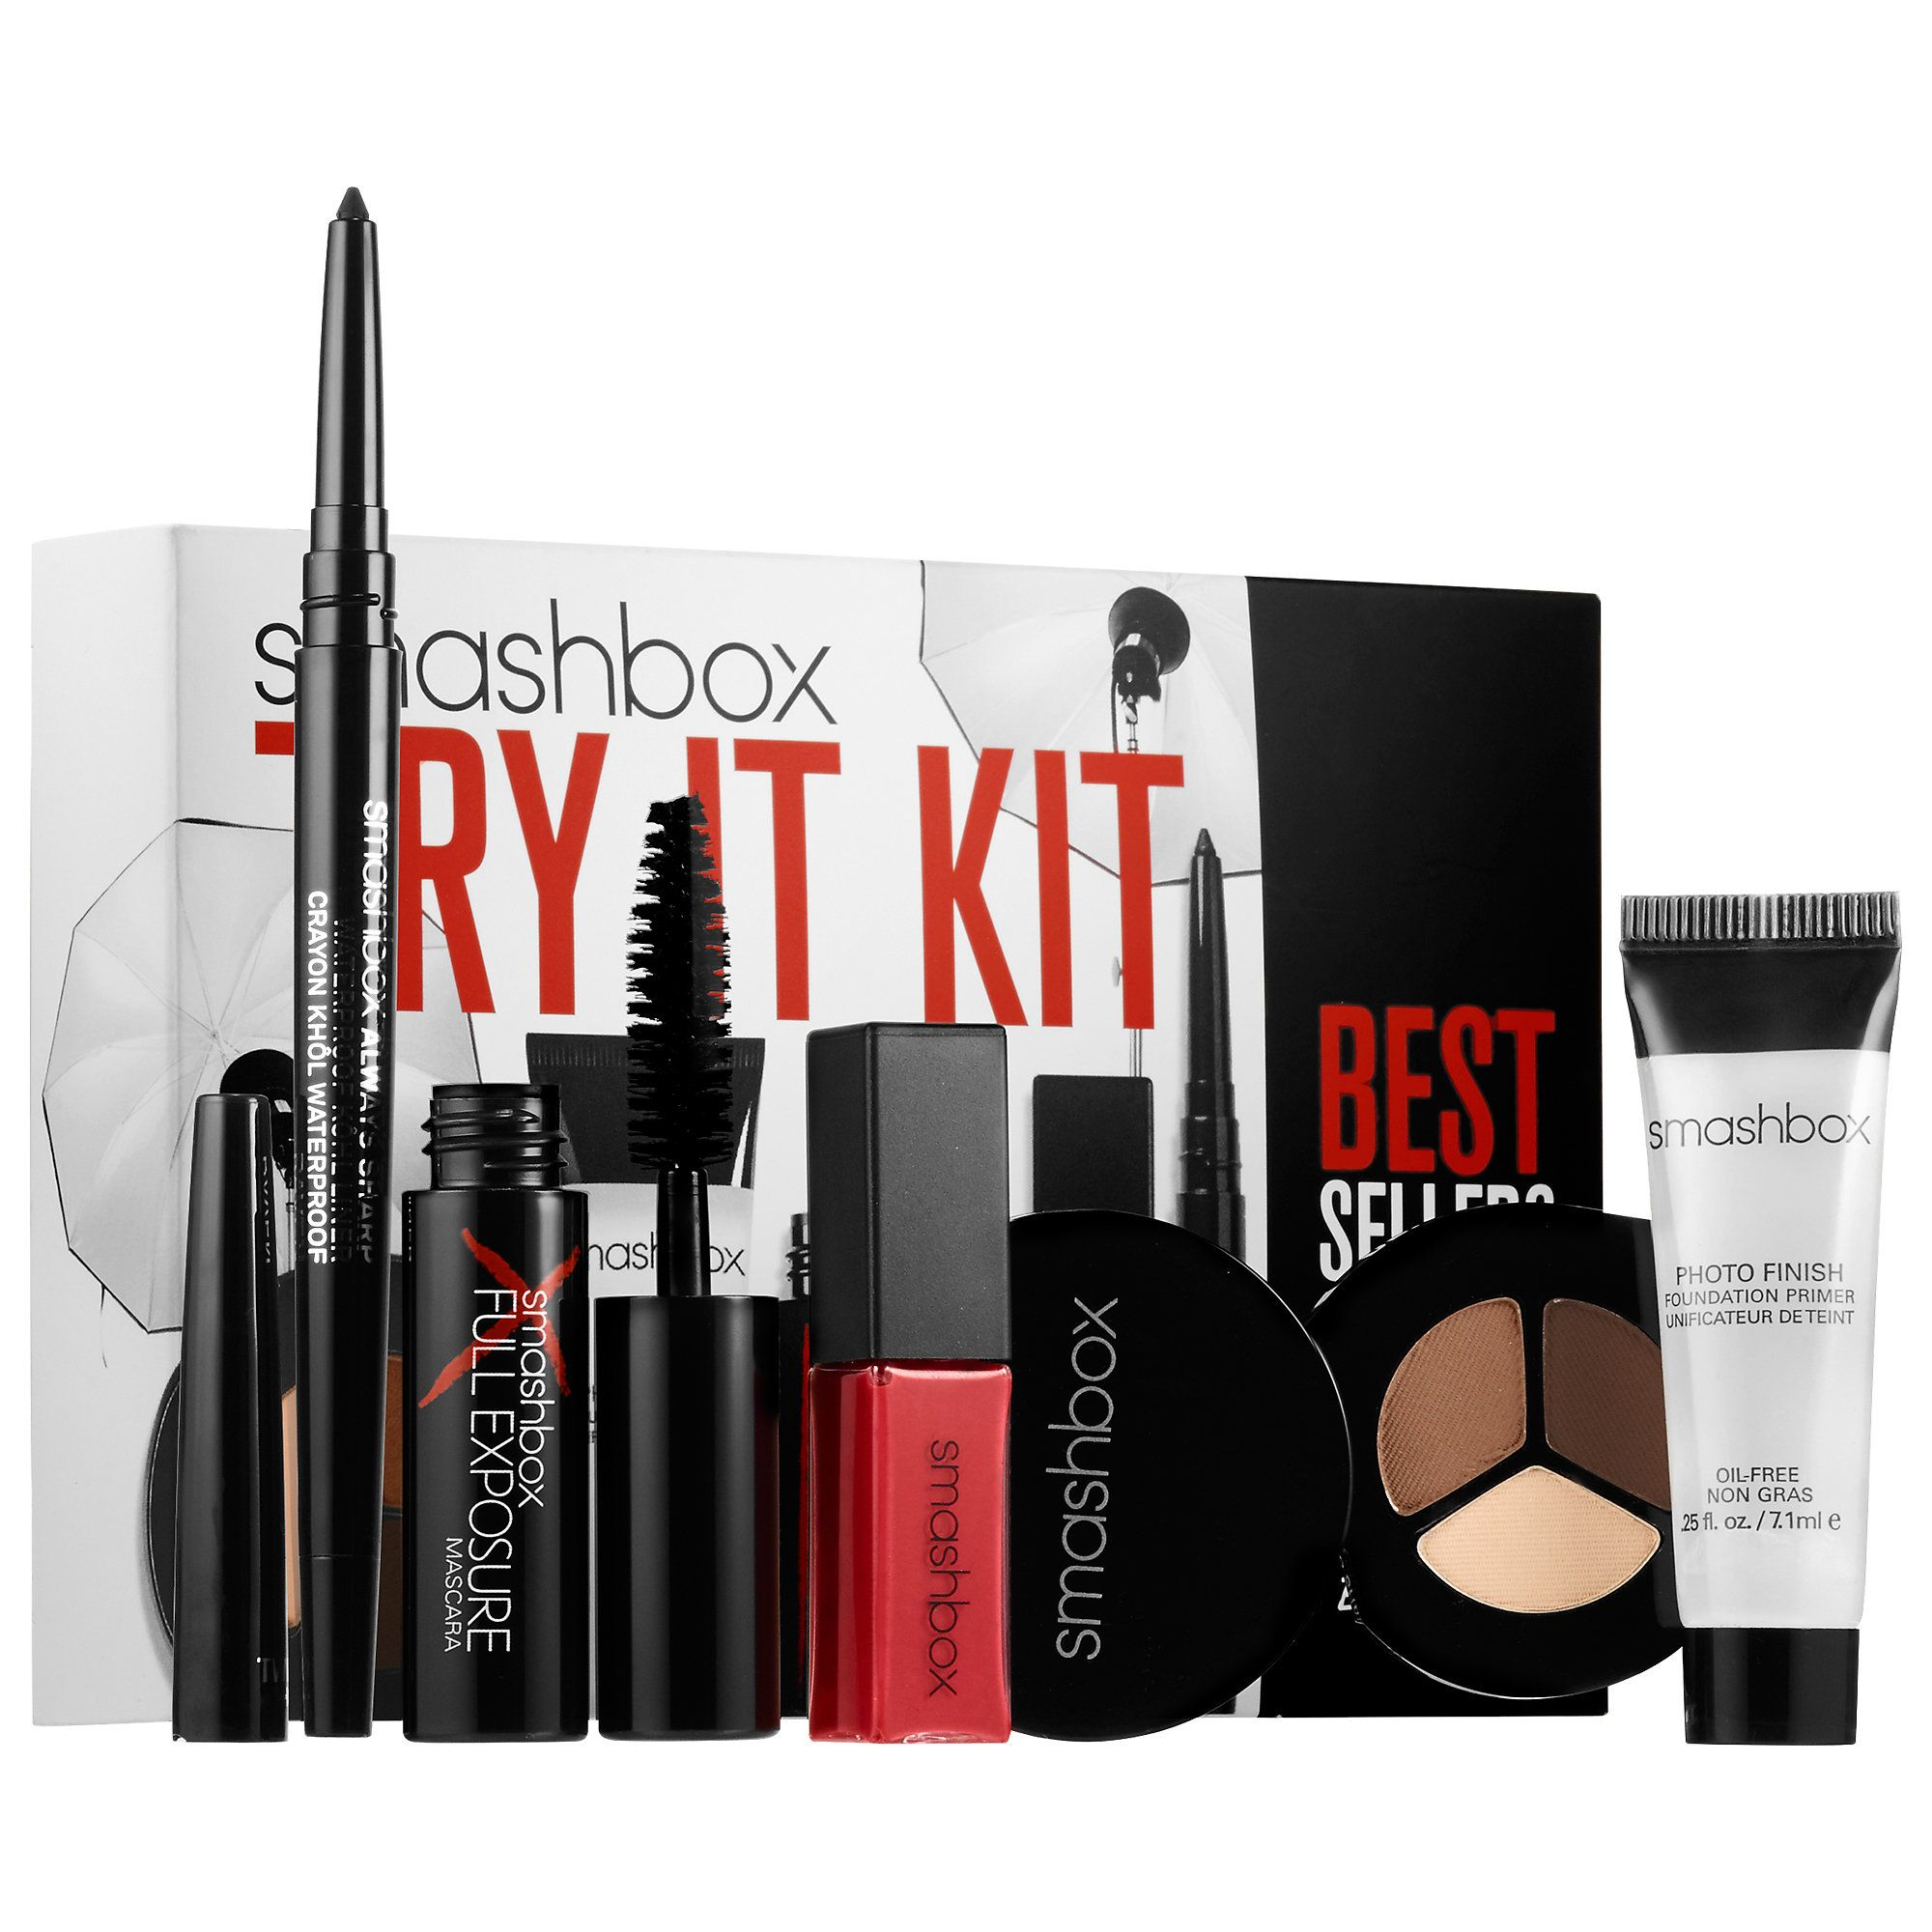 Shop Smashbox's Try it Kit Bestsellers at Sephora. . It